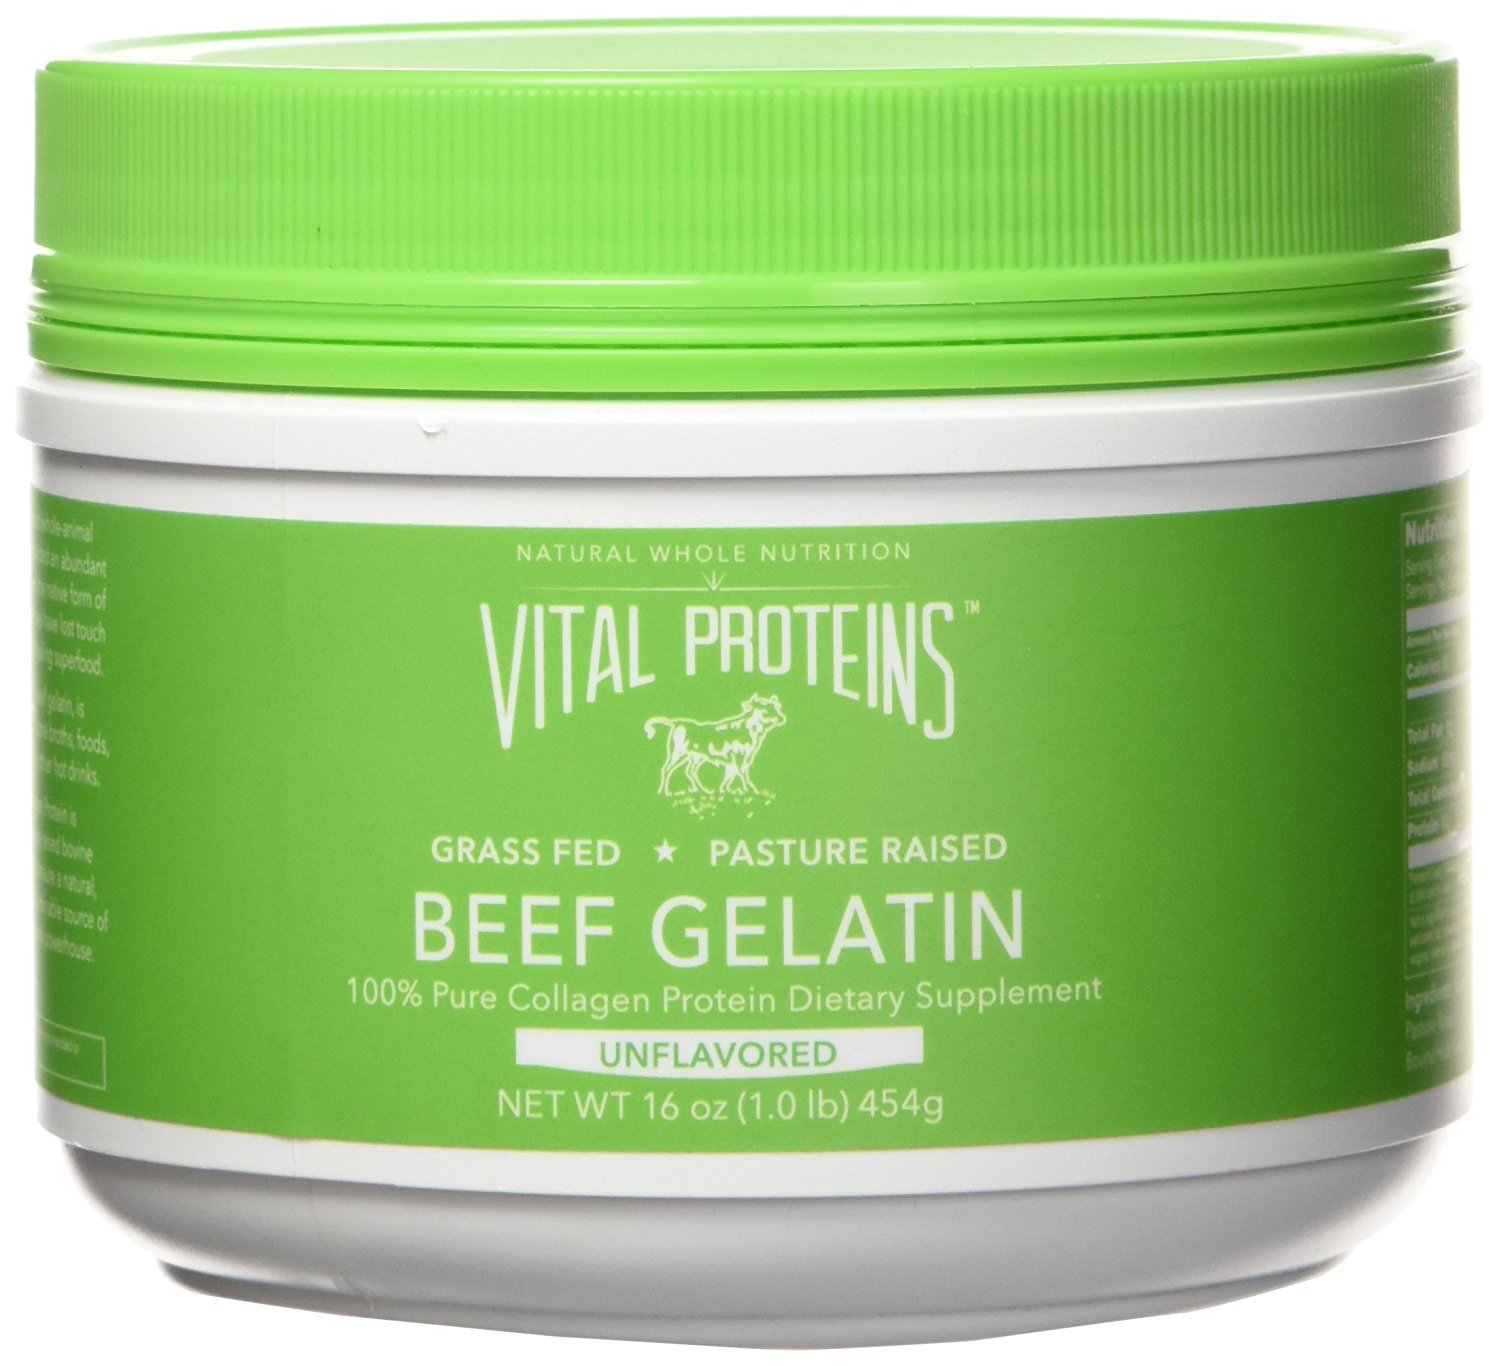 Vital Proteins Beef Gelatin : Pasture-Raised, Grass-Fed, Non-GMO (16 oz) - Gluten free, Dairy free, Sugar free, Whole30 Approved, and Paleo friendly